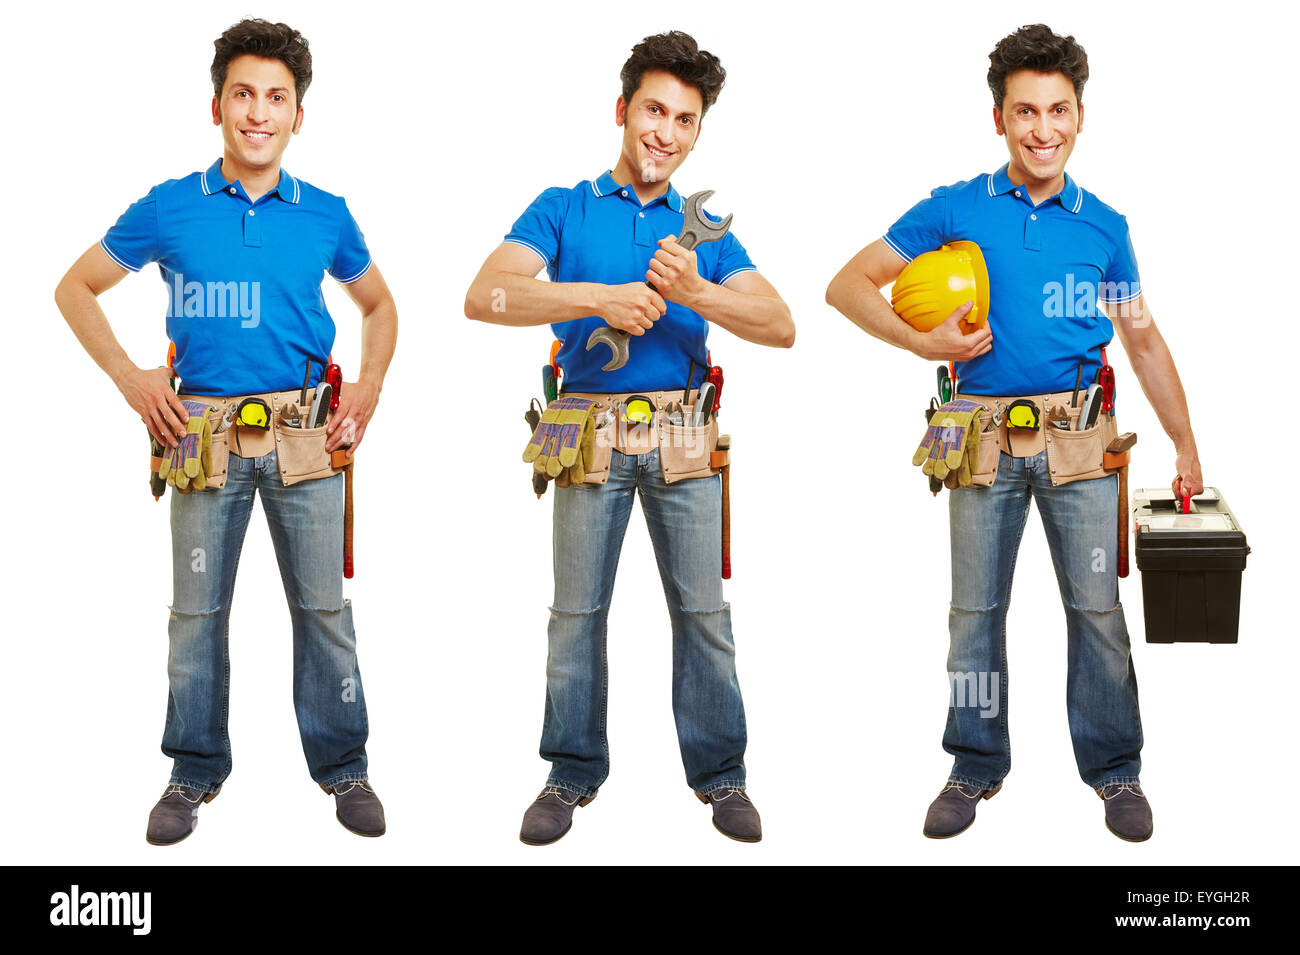 Full body shot of handyman or artisan in different versions isolated on white background - Stock Image